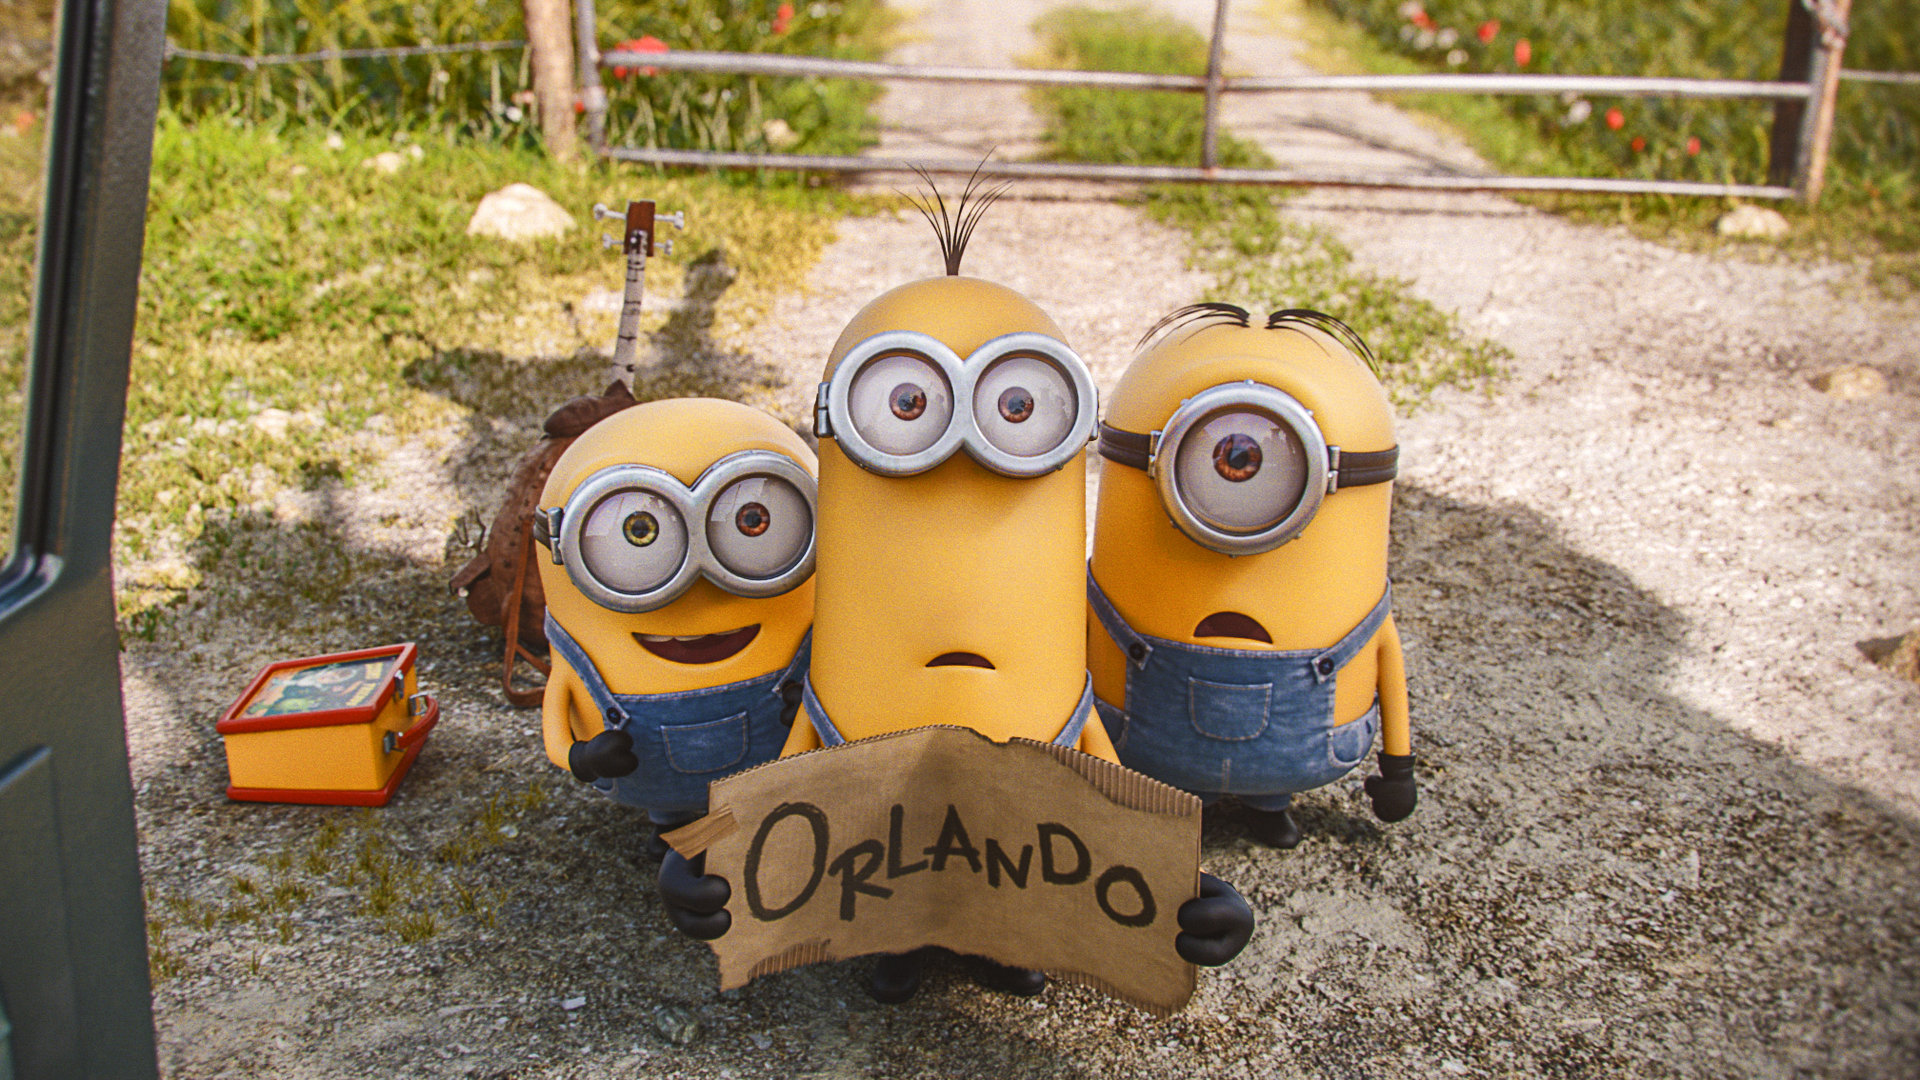 Awesome Minions free wallpaper ID:70234 for hd 1080p computer